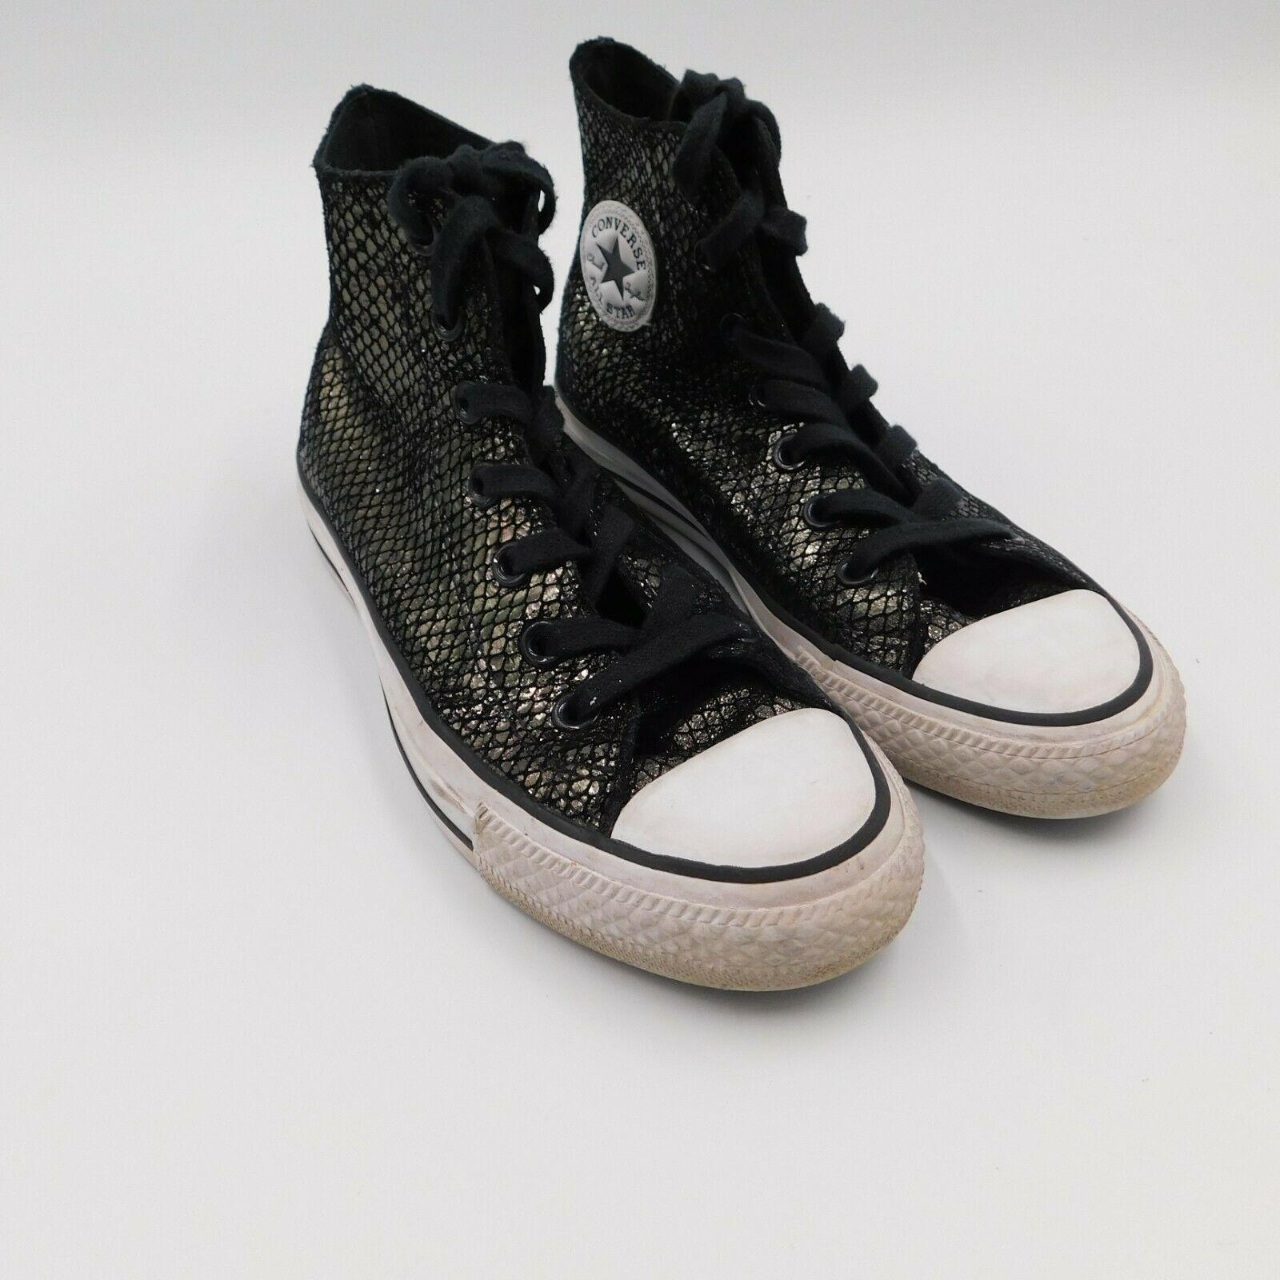 Product Image 1 - Converse Women's High Top Shoes Size 6 Chuck Taylor